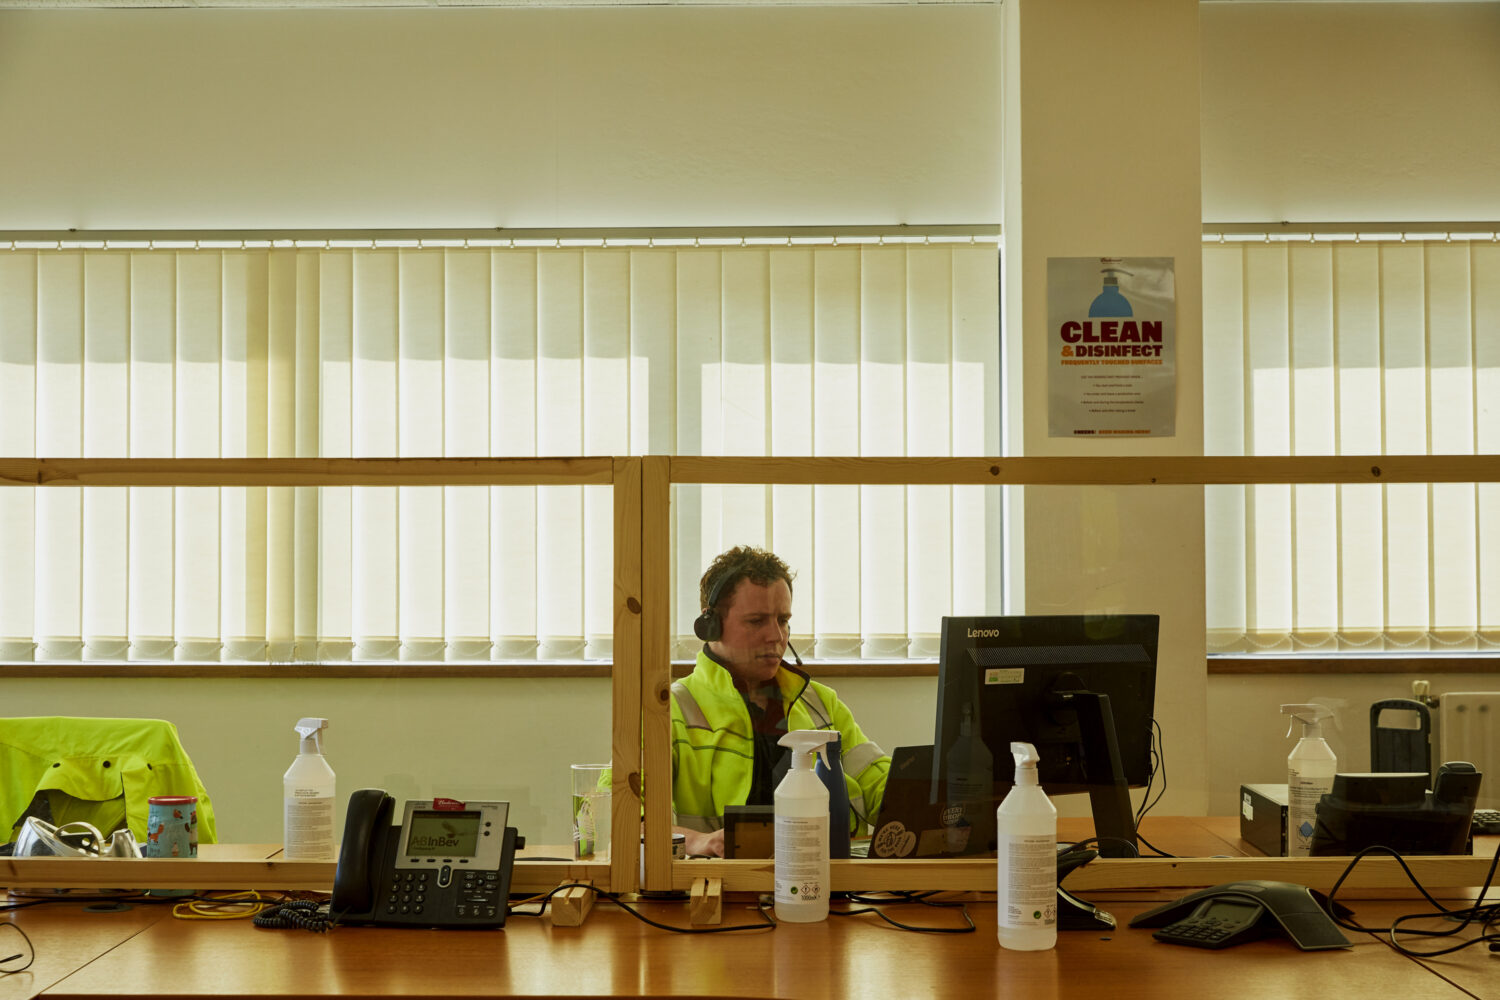 Staff work at pre-booked desks at the AB-Inbev Magor site where workspaces have been adapted to prevent the spread of Covid-19. Perspex screens and sanitizer are available throughout the offices and people wear masks whenever not seated. AB-Inbev Magor, Wales, United Kingdom, June 2021. CREDIT: Emli Bendixen for The Wall Street Journal - Budweiser Brewing Group - Emli Bendixen